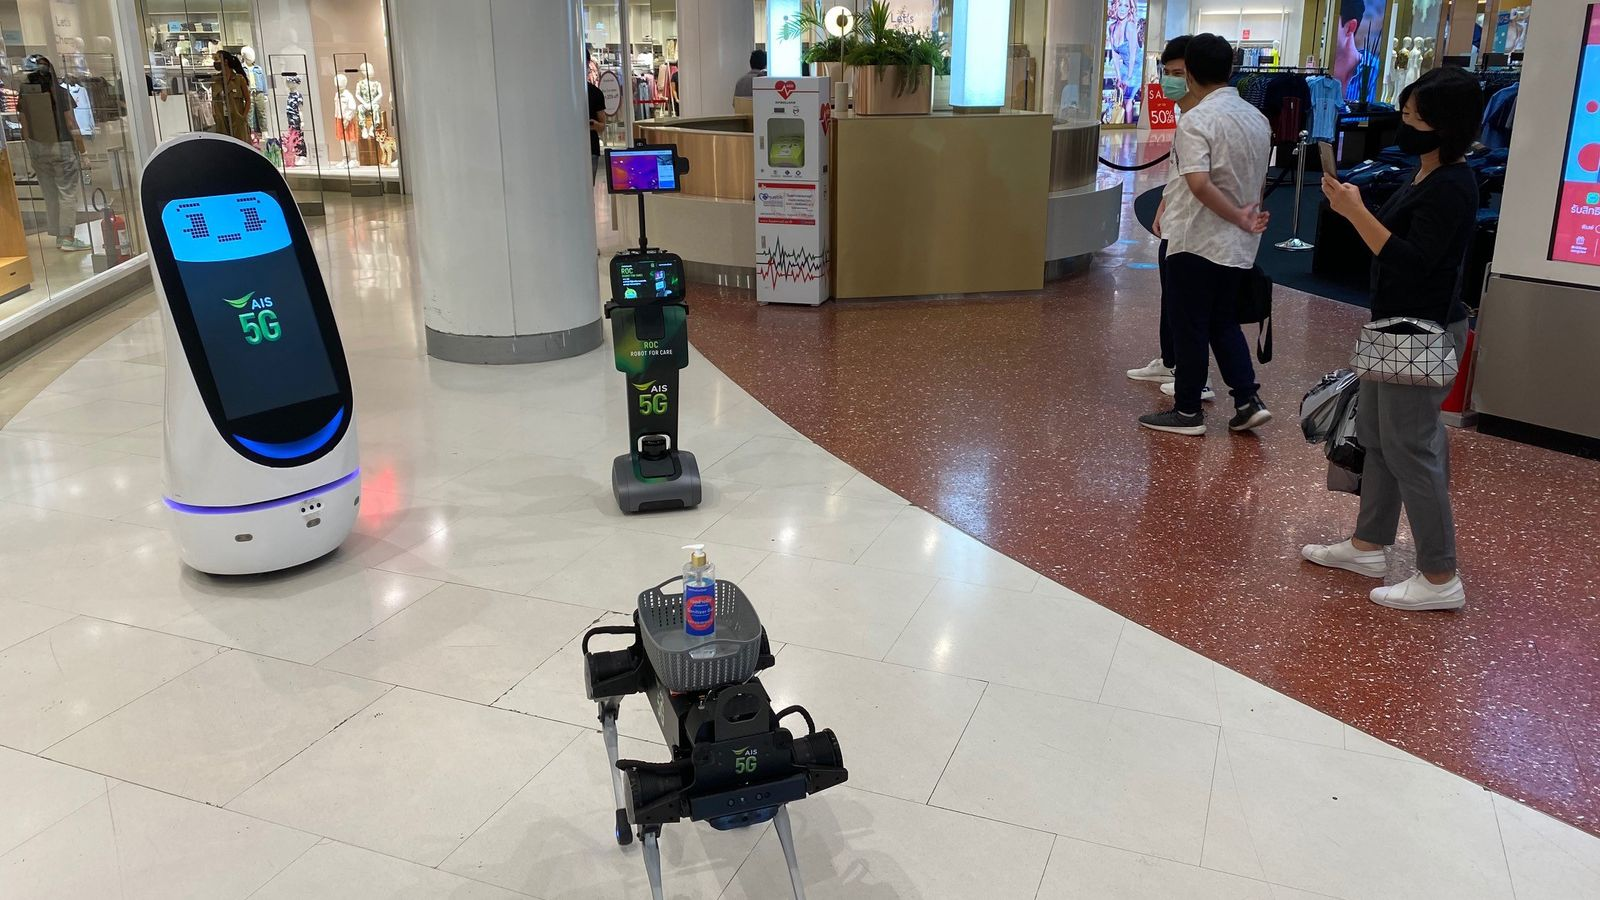 Coronavirus: The robots trying to protect shoppers from COVID-19 in Thailand - Sky News